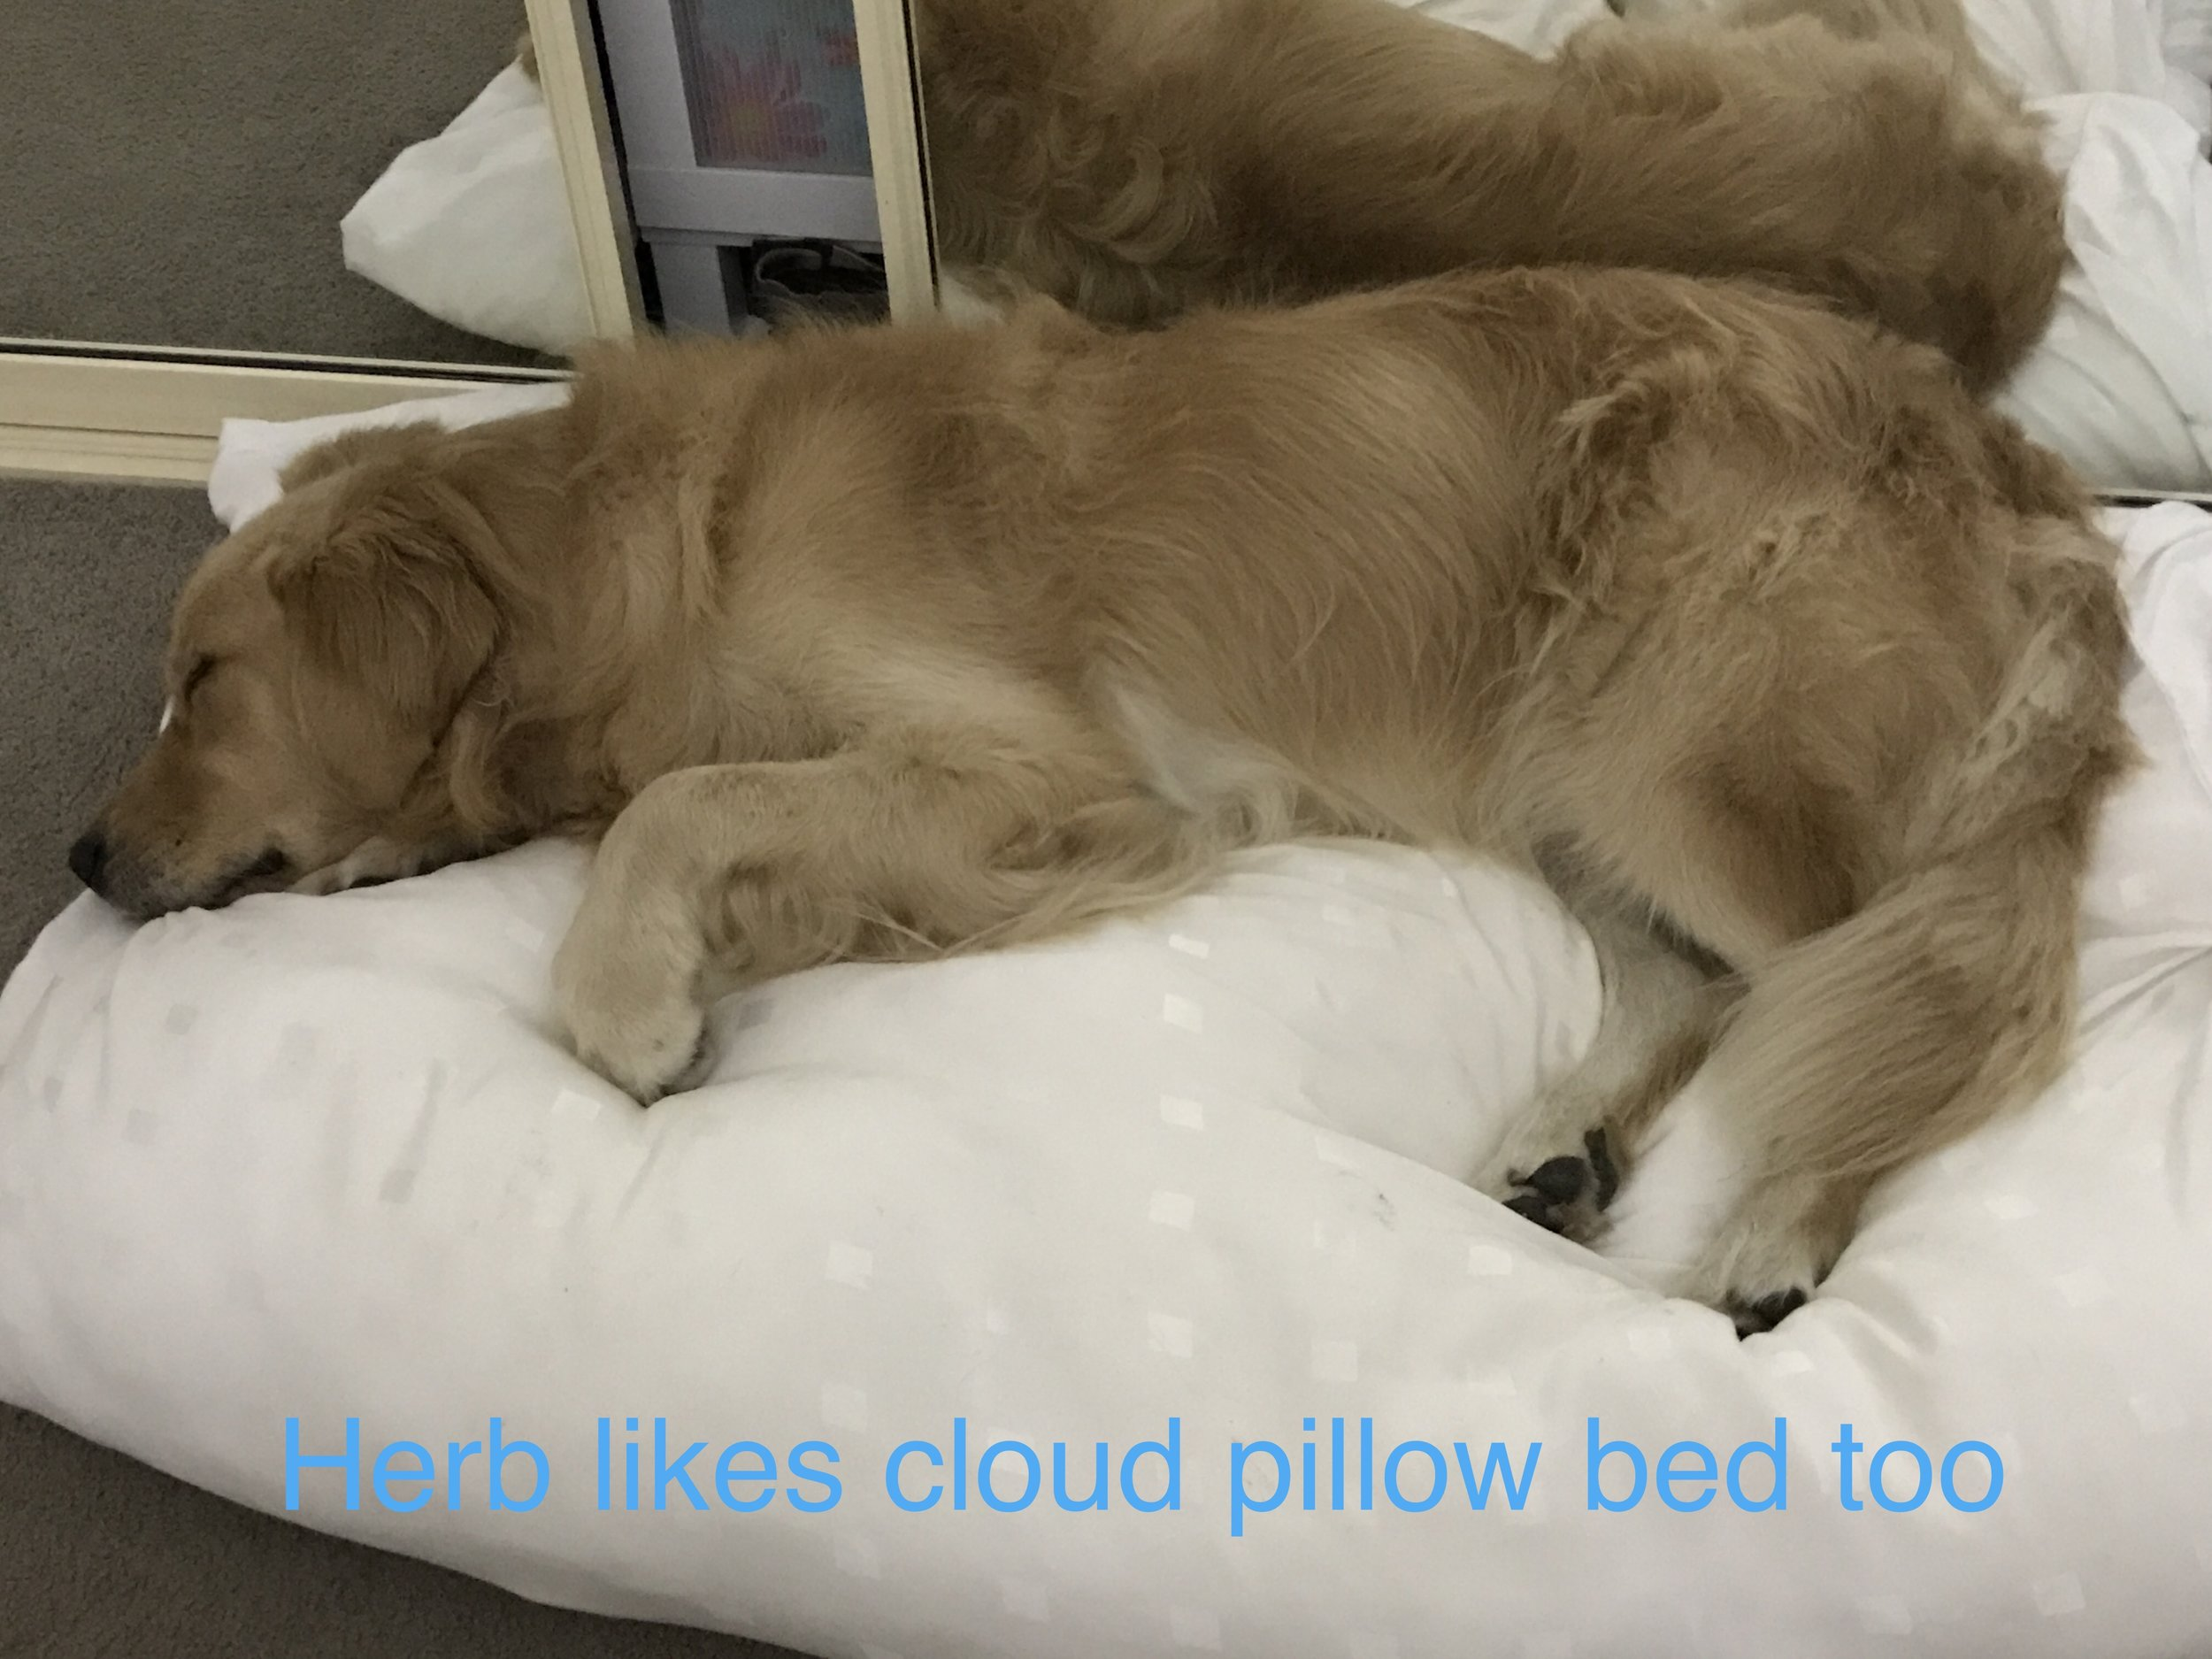 This bed is made of the same material as human pillows and very soft. Some dogs prefer foam which is firmer, but others really like this feel - as you can see.